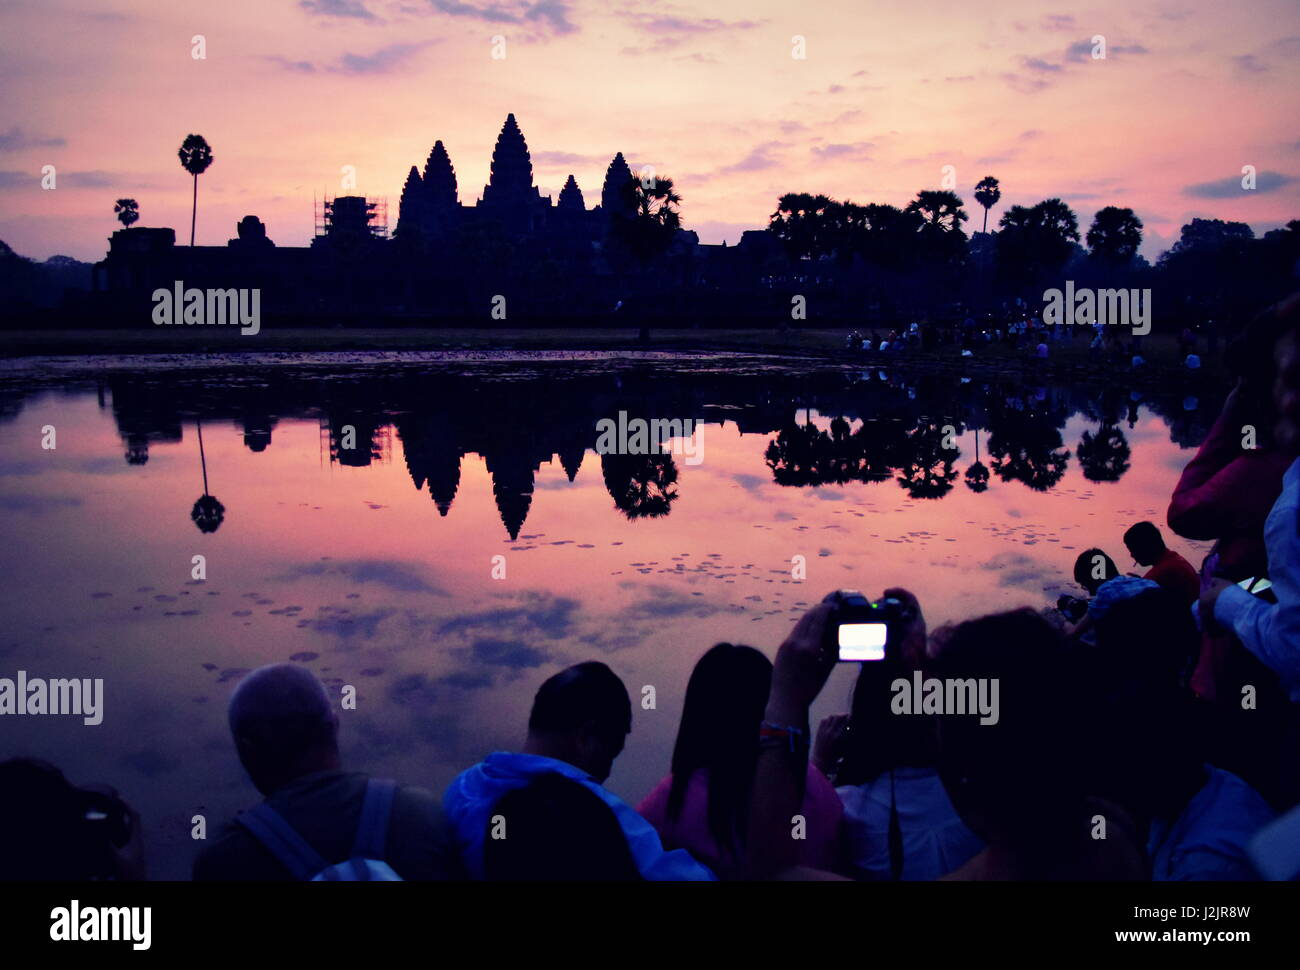 Beautiful sunrise colors over Angkor Wat ancient stone temple ruins, Cambodia - Stock Image